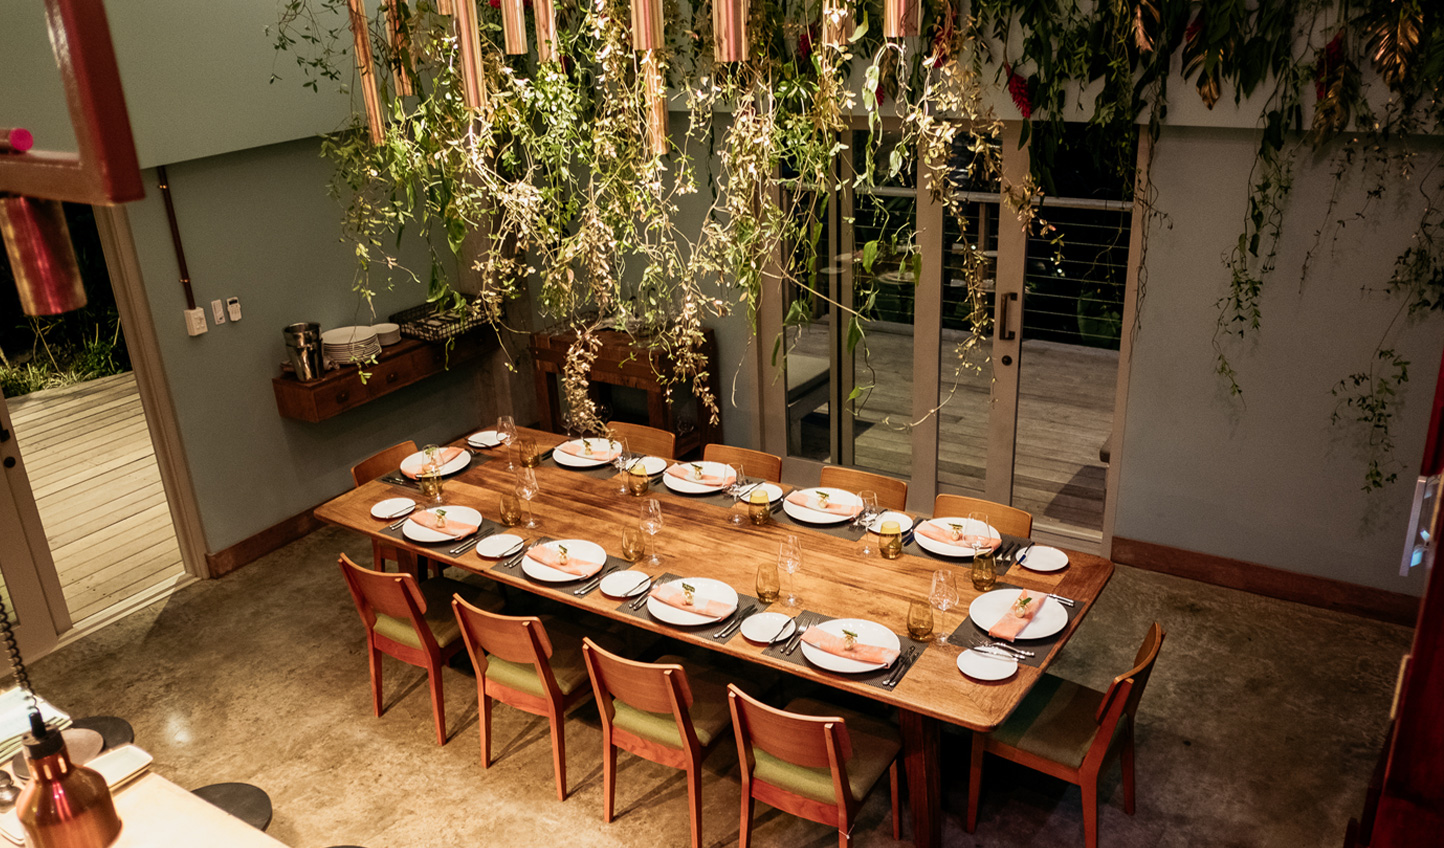 Dine at the Chef's Table for a unique culinary experience